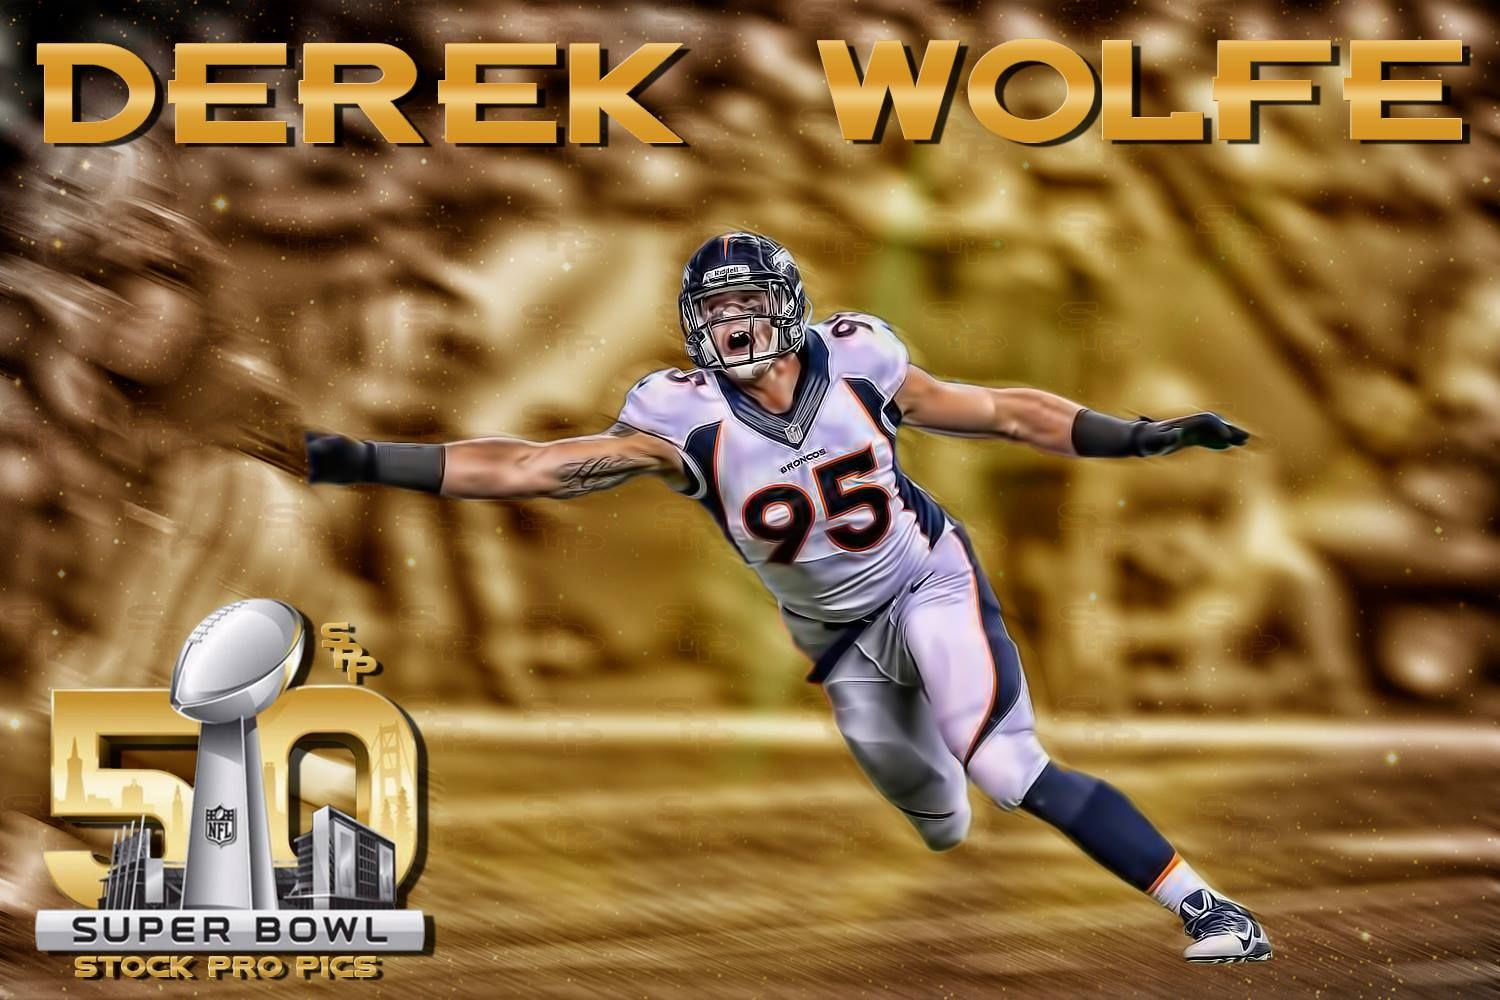 Derek Wolfe Superbowl 50 s and for